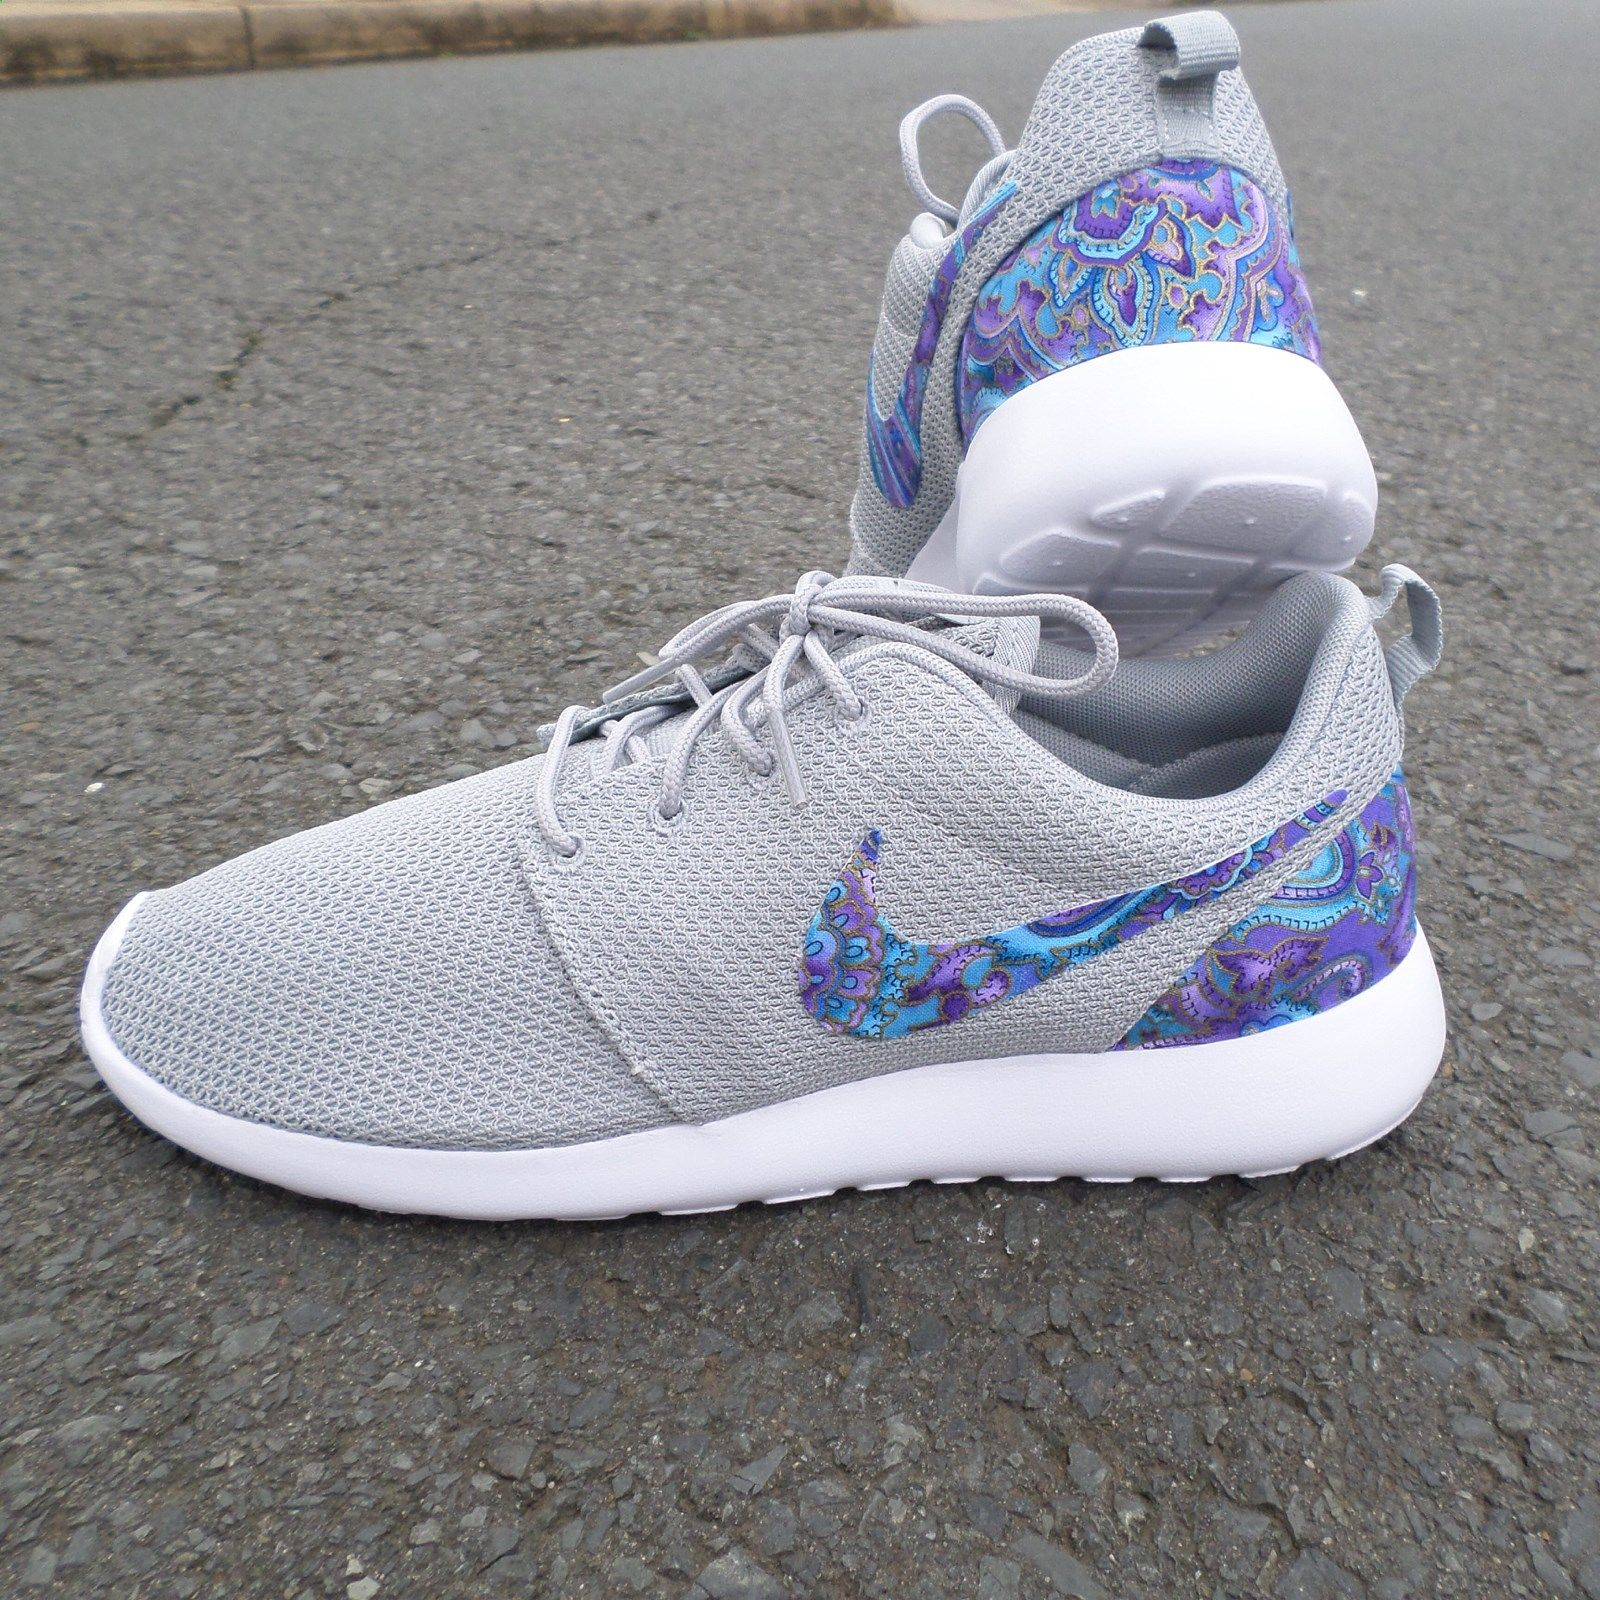 Custom Nike Roshe One Teal Purple Paisley / Customs x Cario